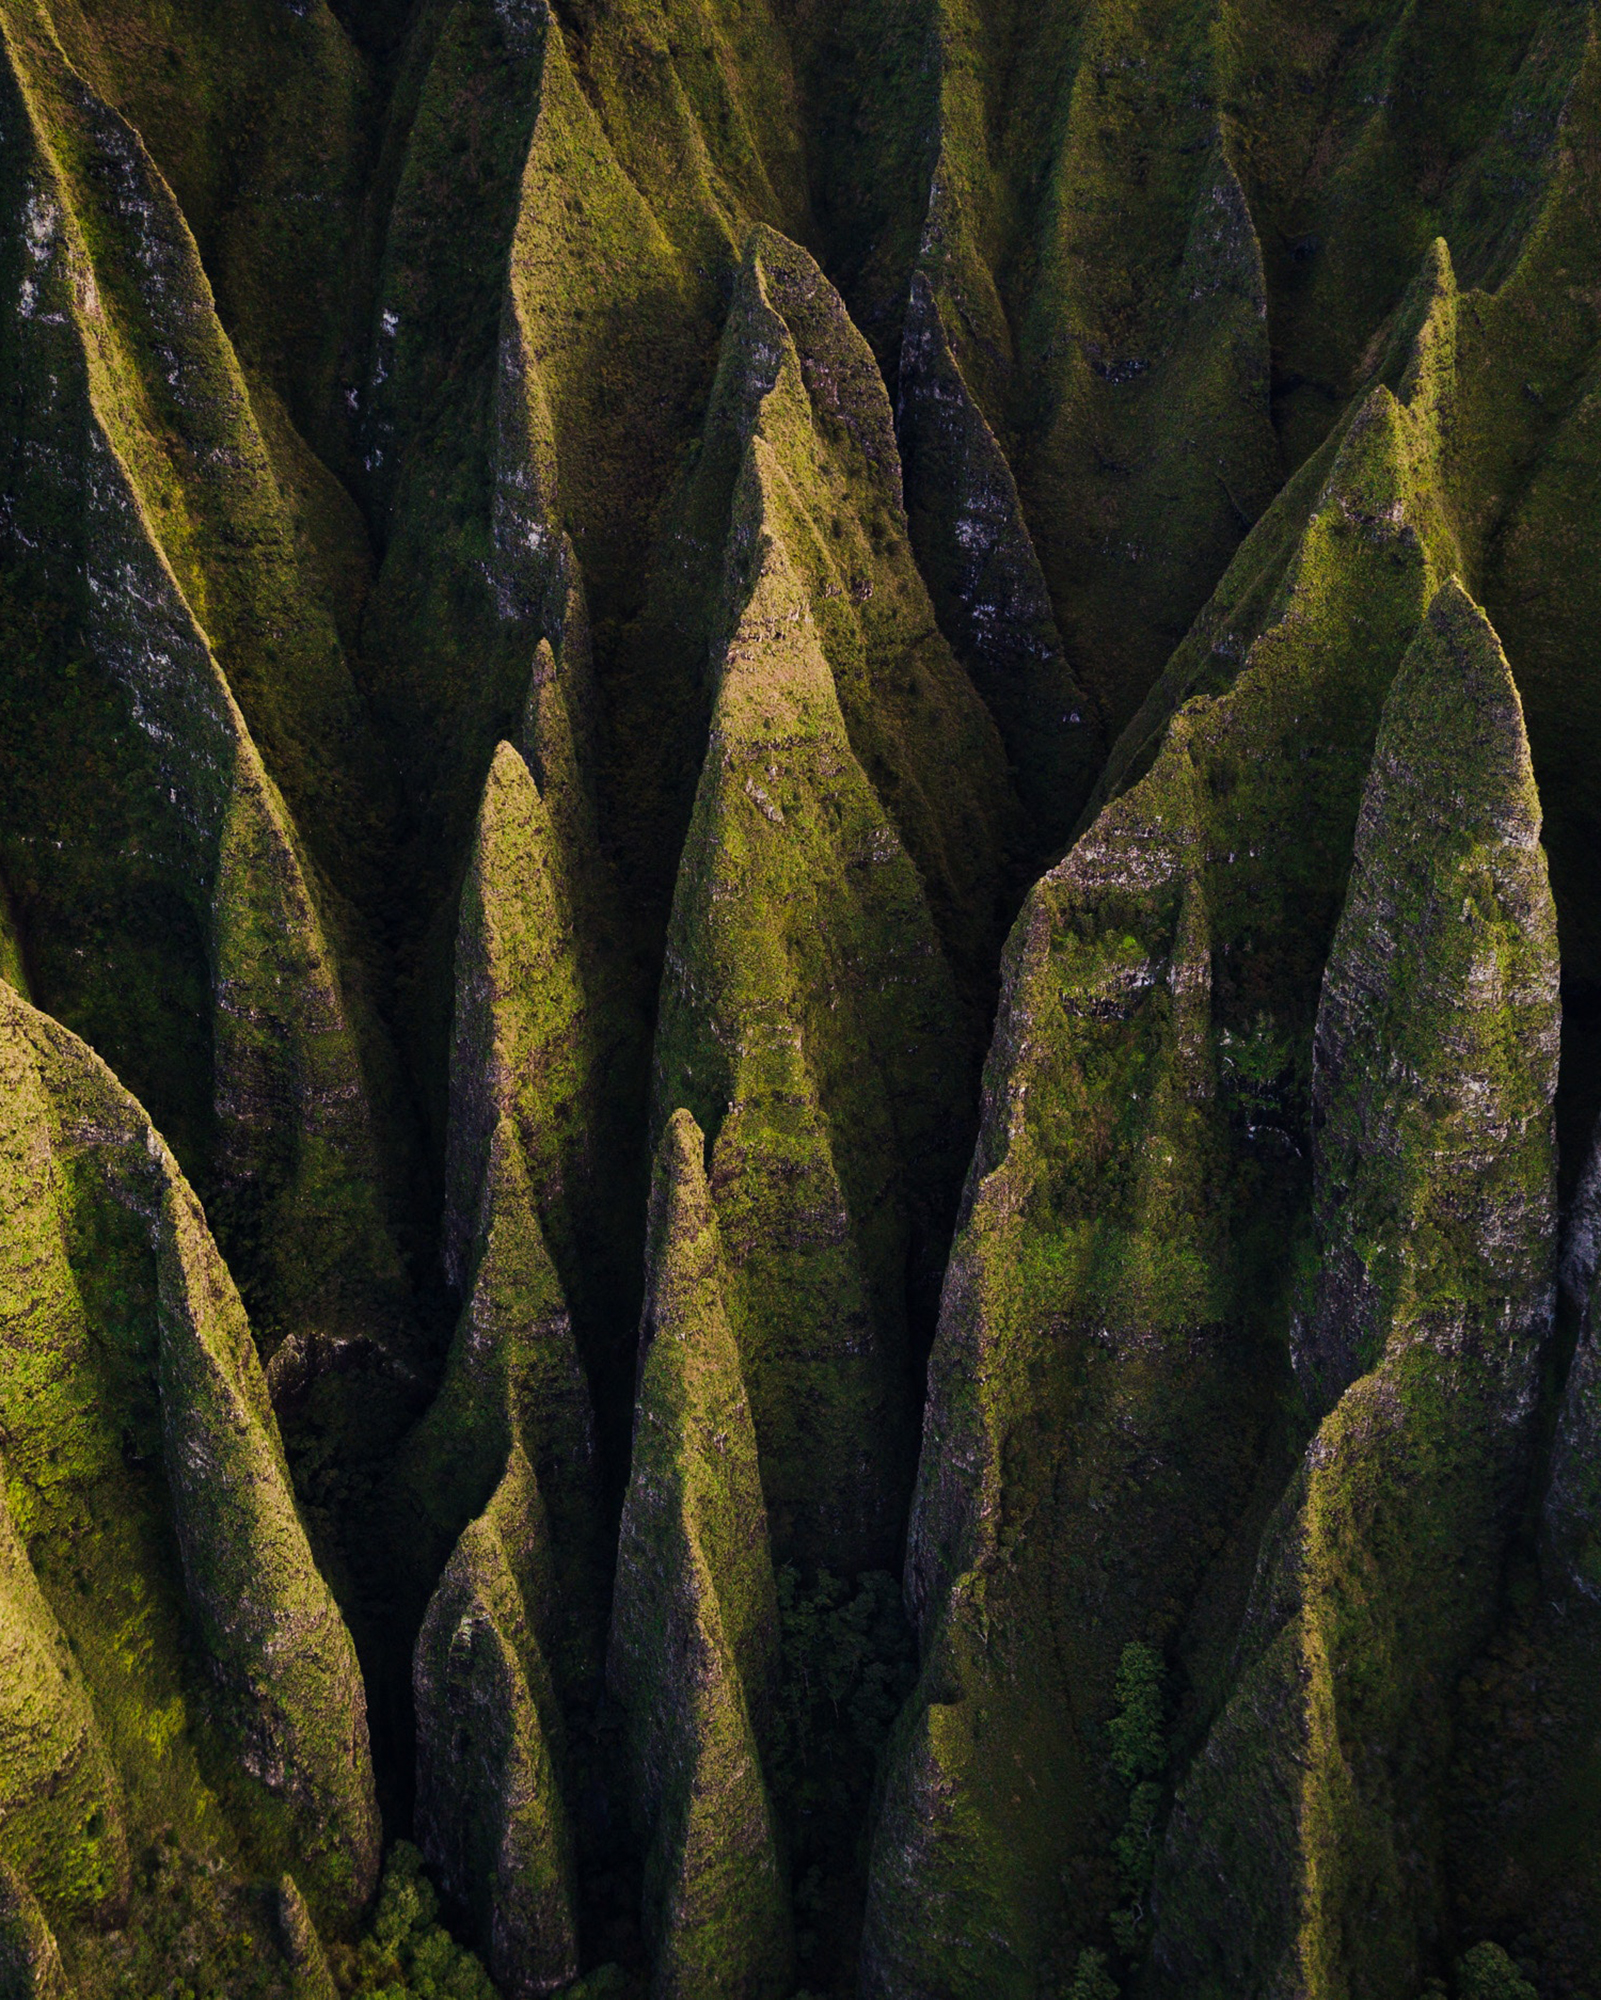 """Check out this amazing capture above Nā Pali Coast State Park, located along the northwest side of Kauai in the Hawaiian Islands. """"Nā Pali"""" means """"many cliffs"""" in Hawaiian, and some such cliffs rise to roughly 4,000 feet (1,200 m) above the Pacific Ocean. This area is inaccessible by vehicle, but can be reached by hiking or helicopter, as well as from the ocean by kayak or paddleboard.  22°10'31.9""""N, 159°38'37.0""""W  Source imagery: Spencer Watson (@thebrownspy)"""